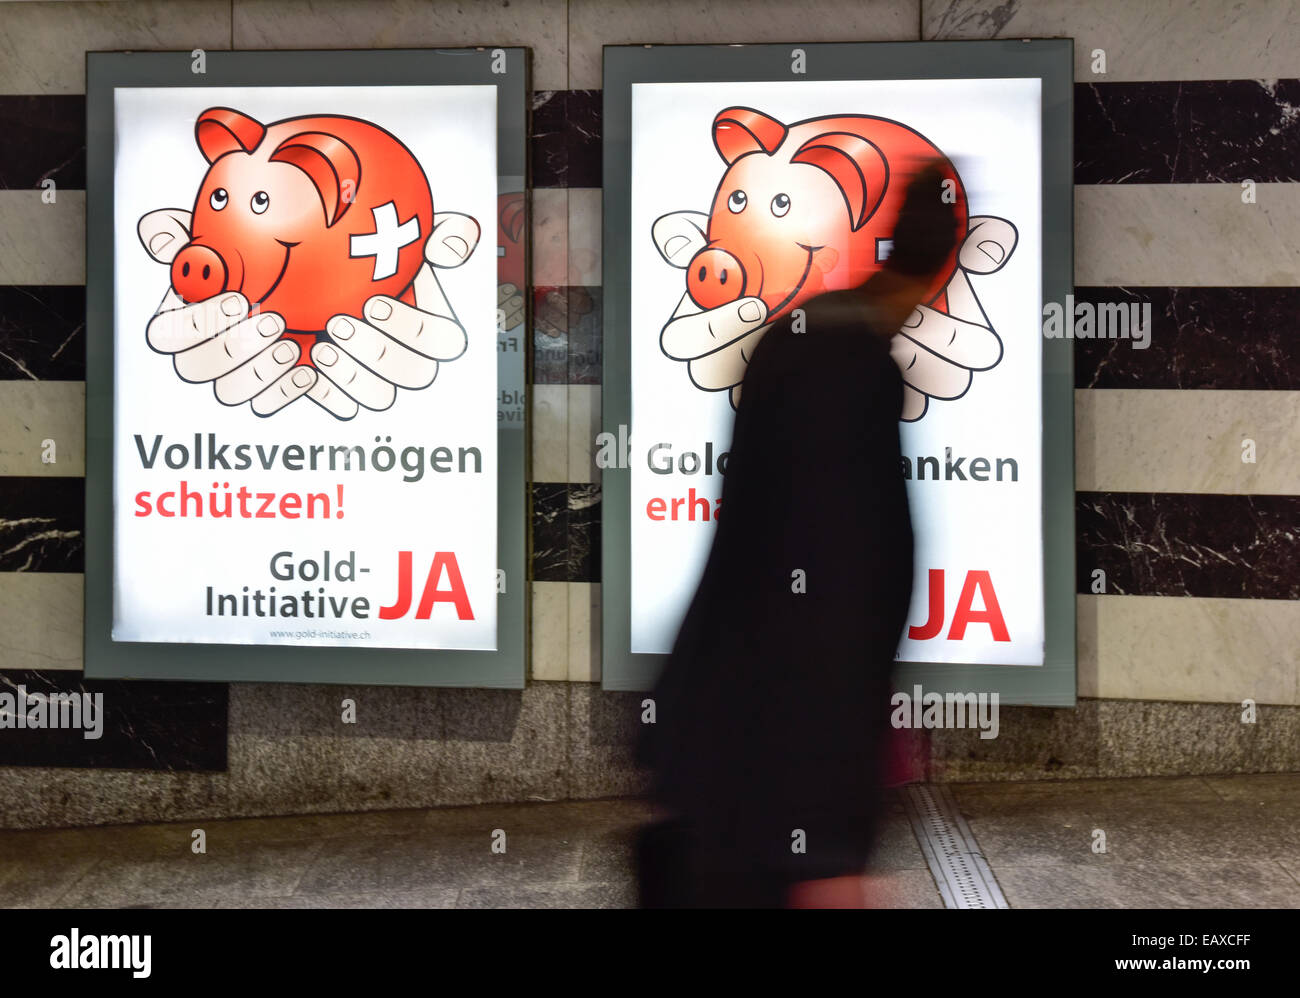 Zurich, Switzerland. 21st Nov, 2014. People at Zurich main station are passing by referendum campaign posters of - Stock Image